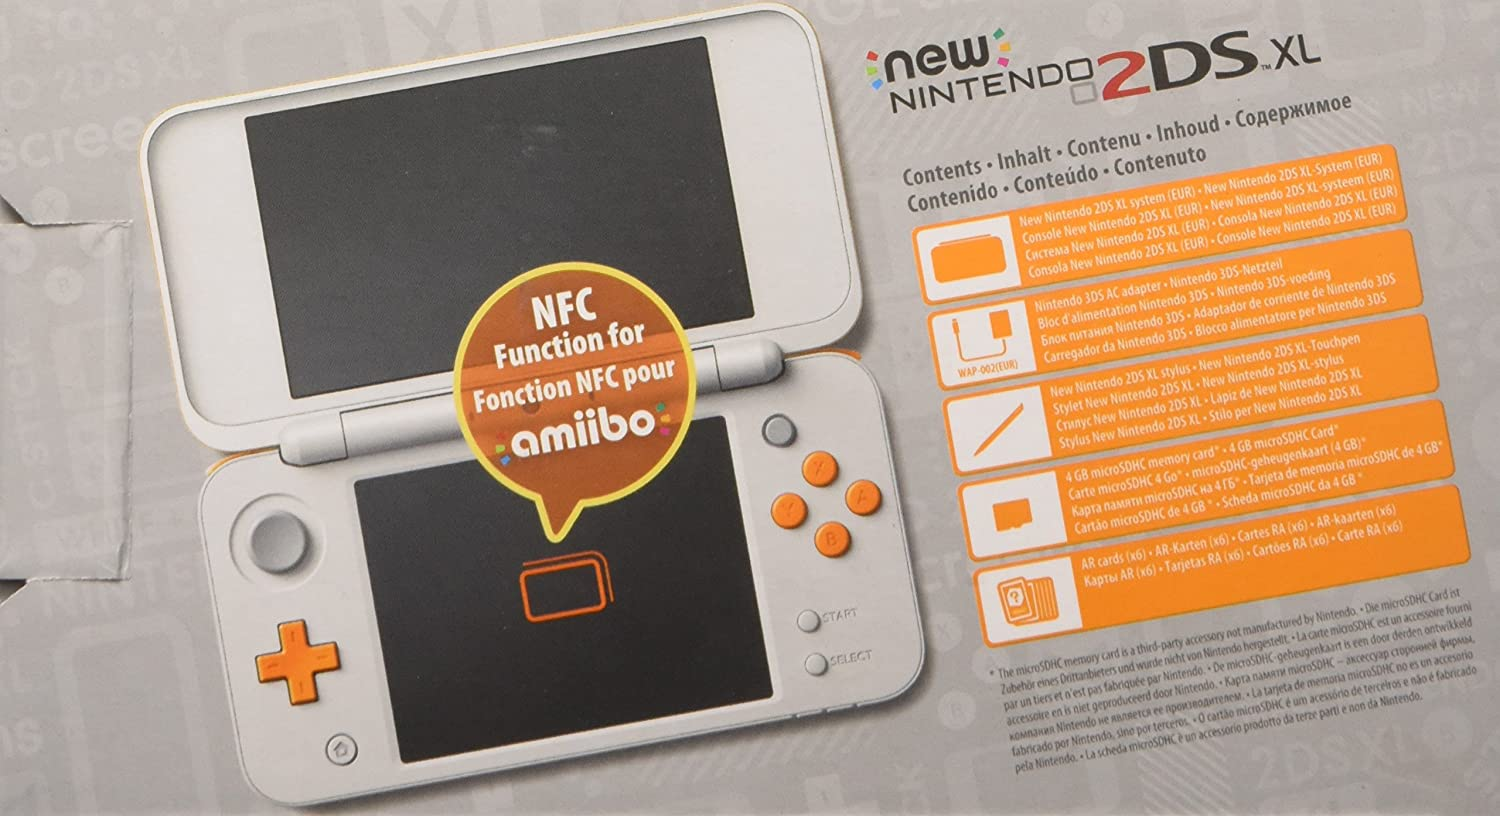 Nintendo New 2DS XL - Consola Portátil, Color Blanco y ...